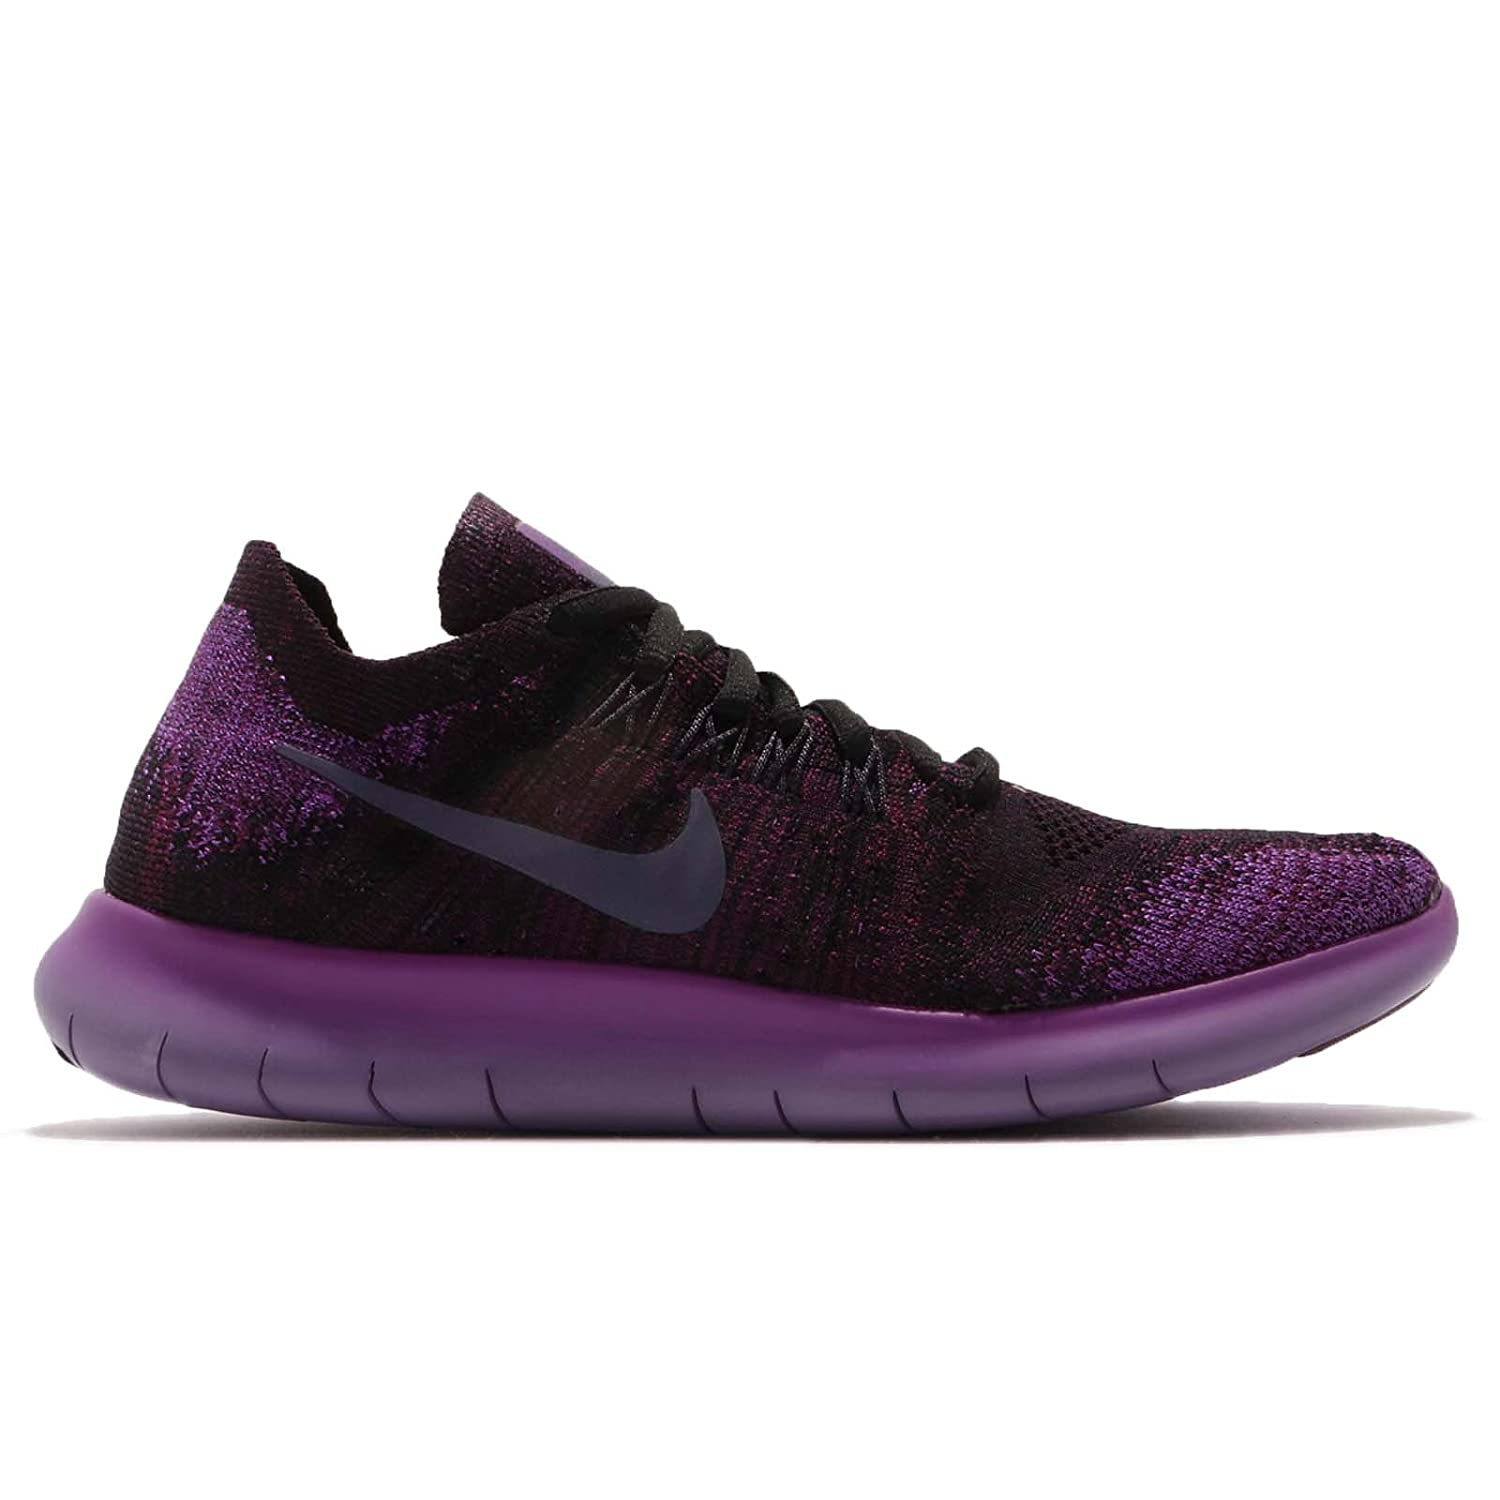 on sale dc8a7 f8443 Amazon.com   NIKE Women s Free RN Flyknit 2017 Running Shoe   Road Running